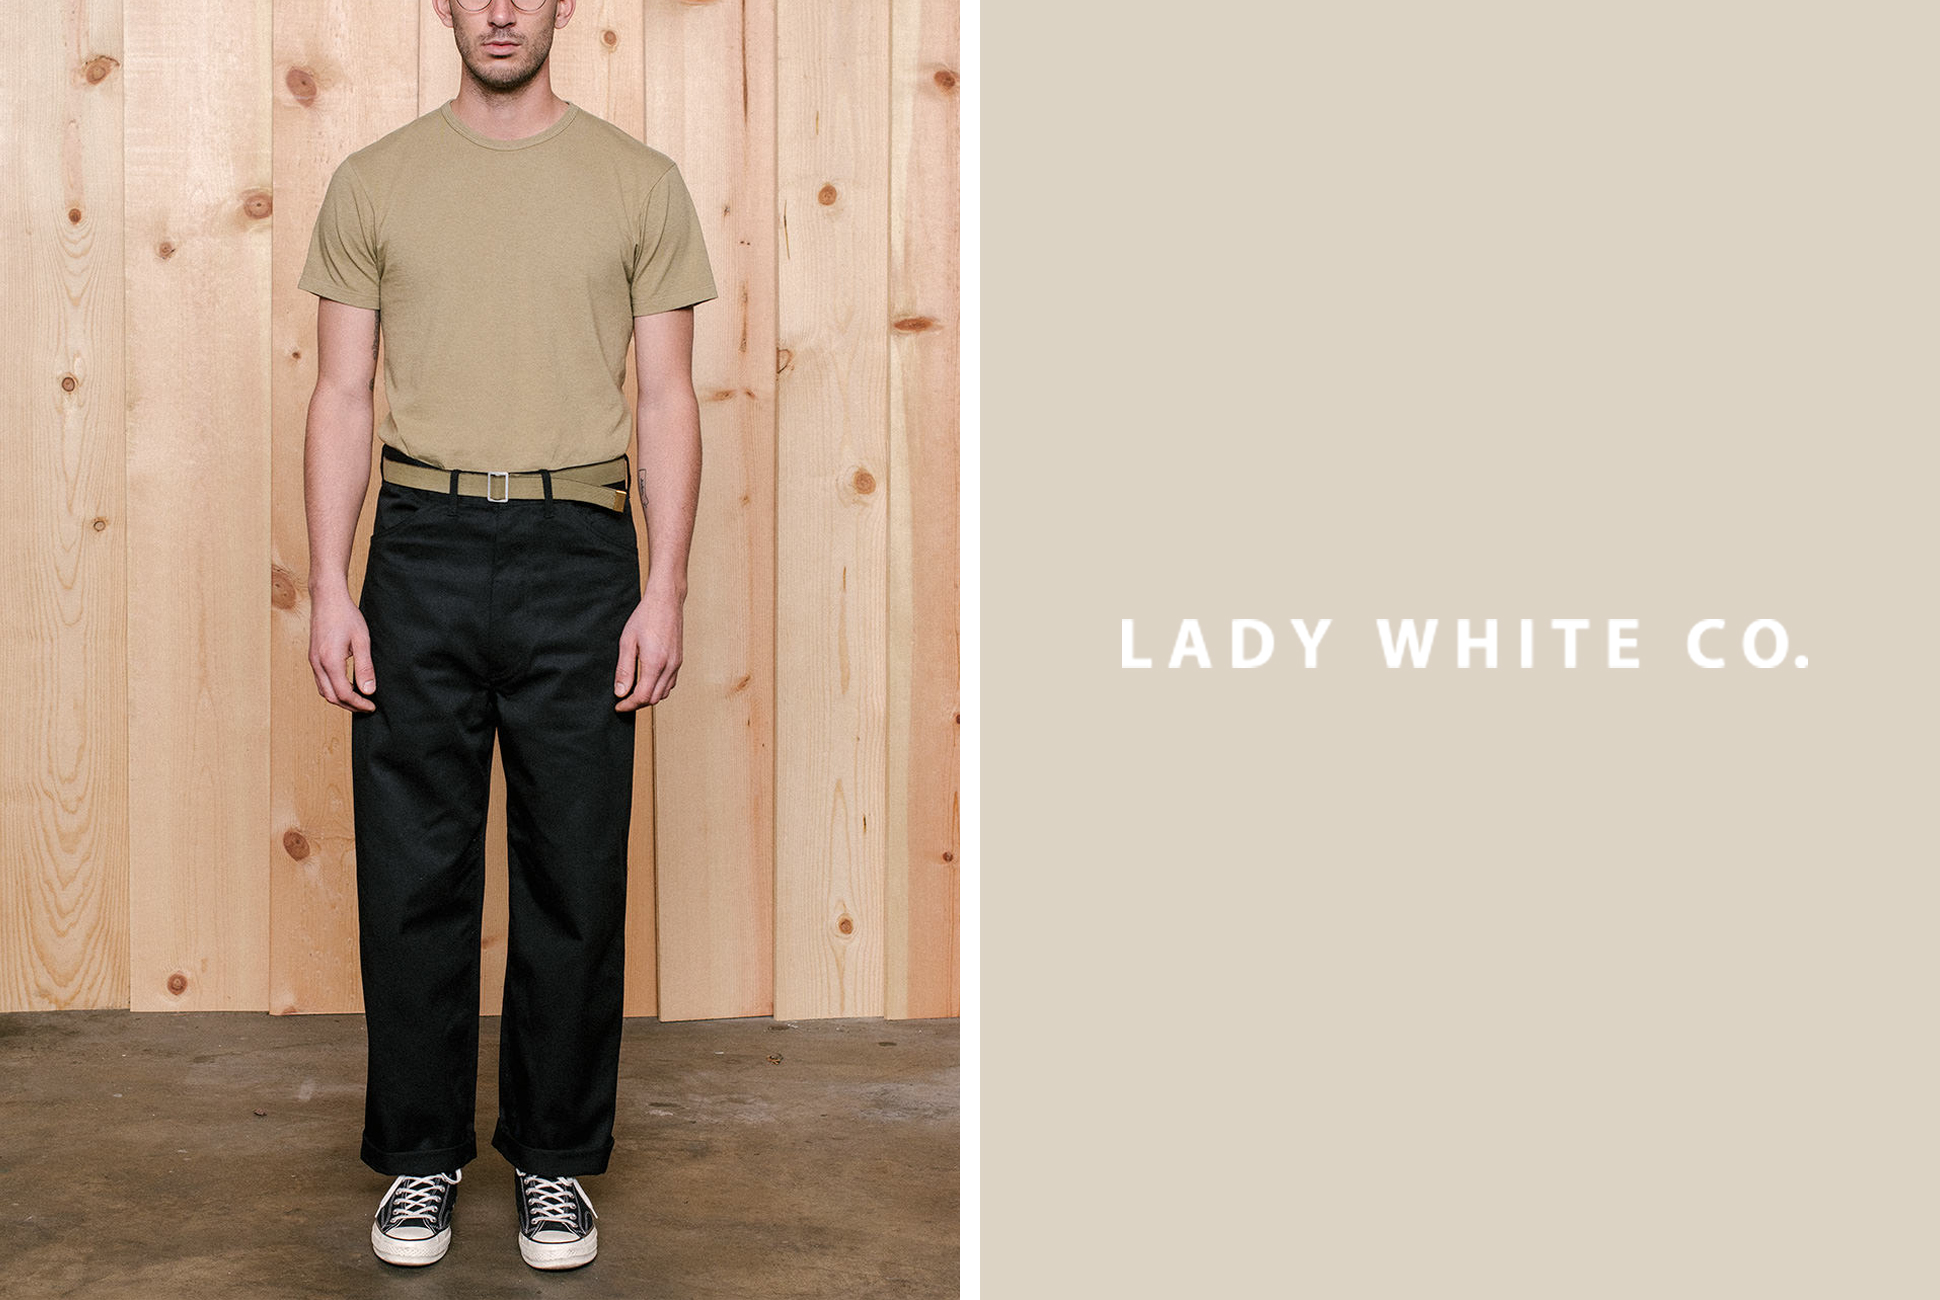 gear-patrol-tee-brands-to-know-ladywhite